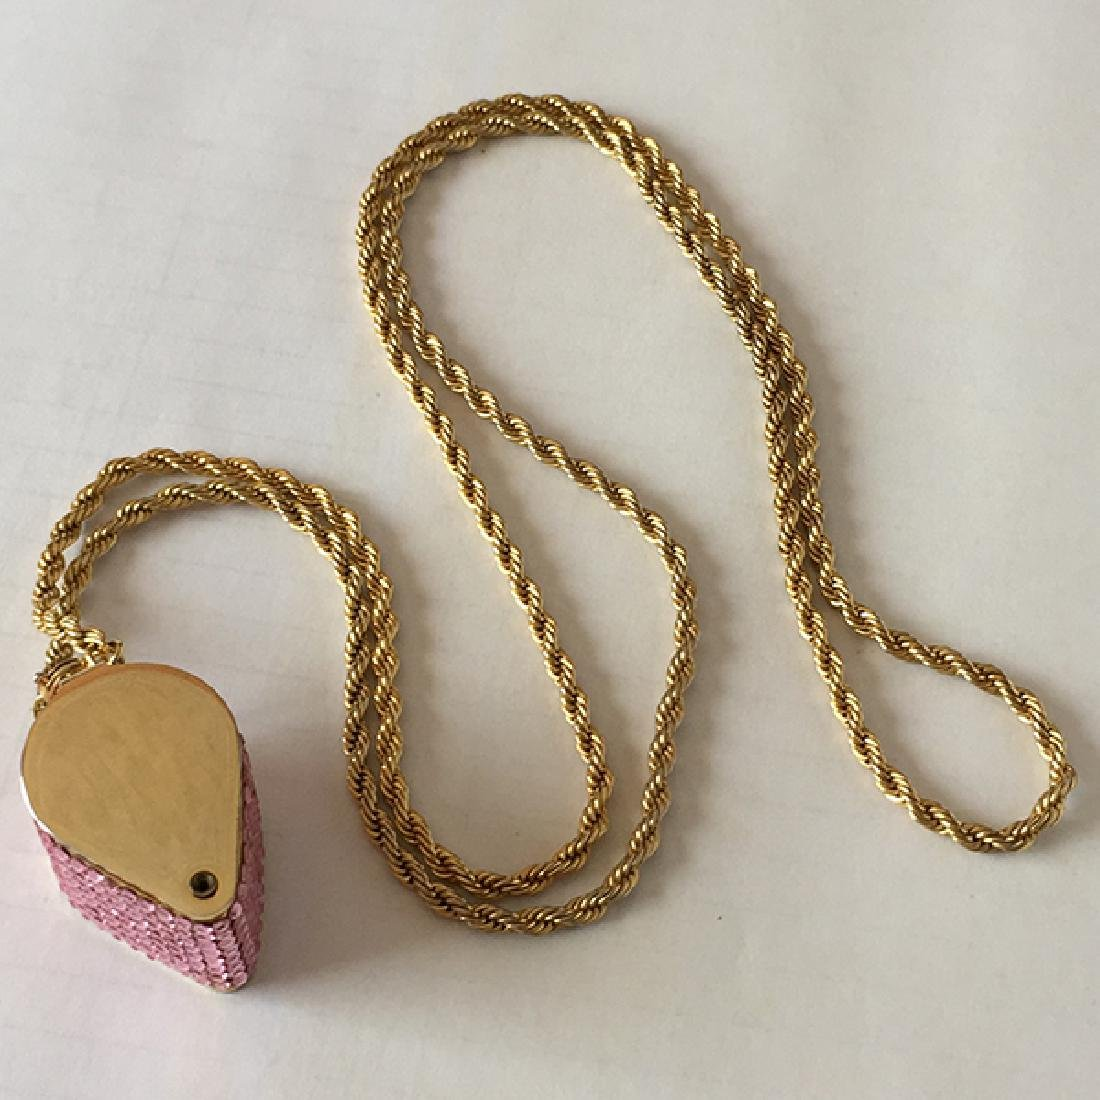 Gold plated professional loop with Swarovski pink color